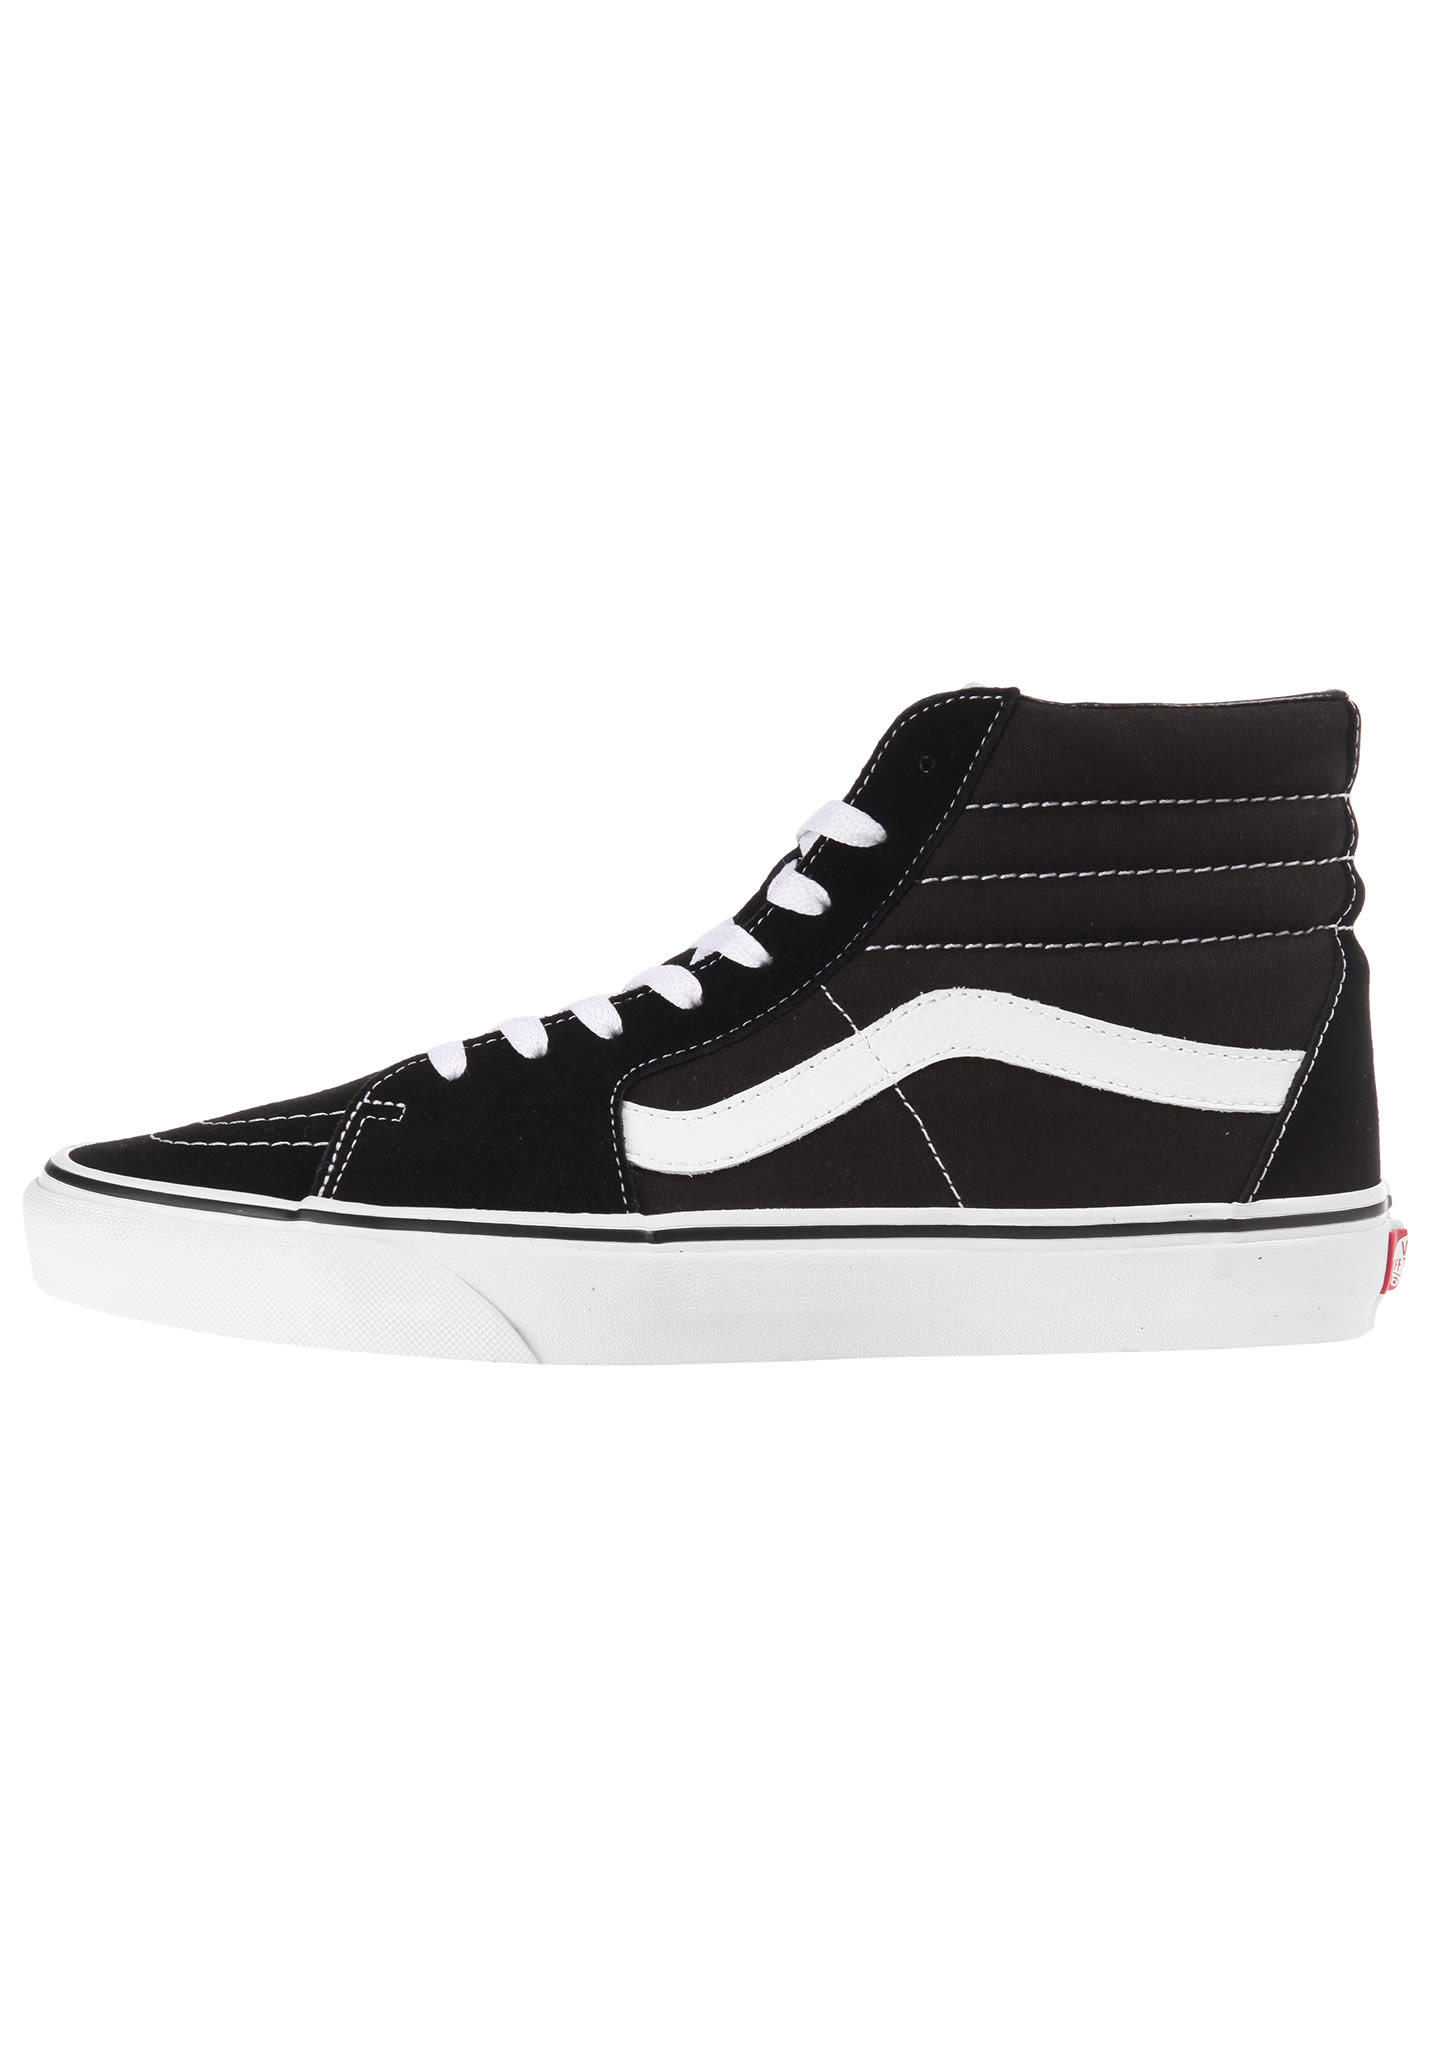 8cfa07325702 VANS Schuhe   Mode • Damen und Herren • Online-Shop   PLANET SPORTS